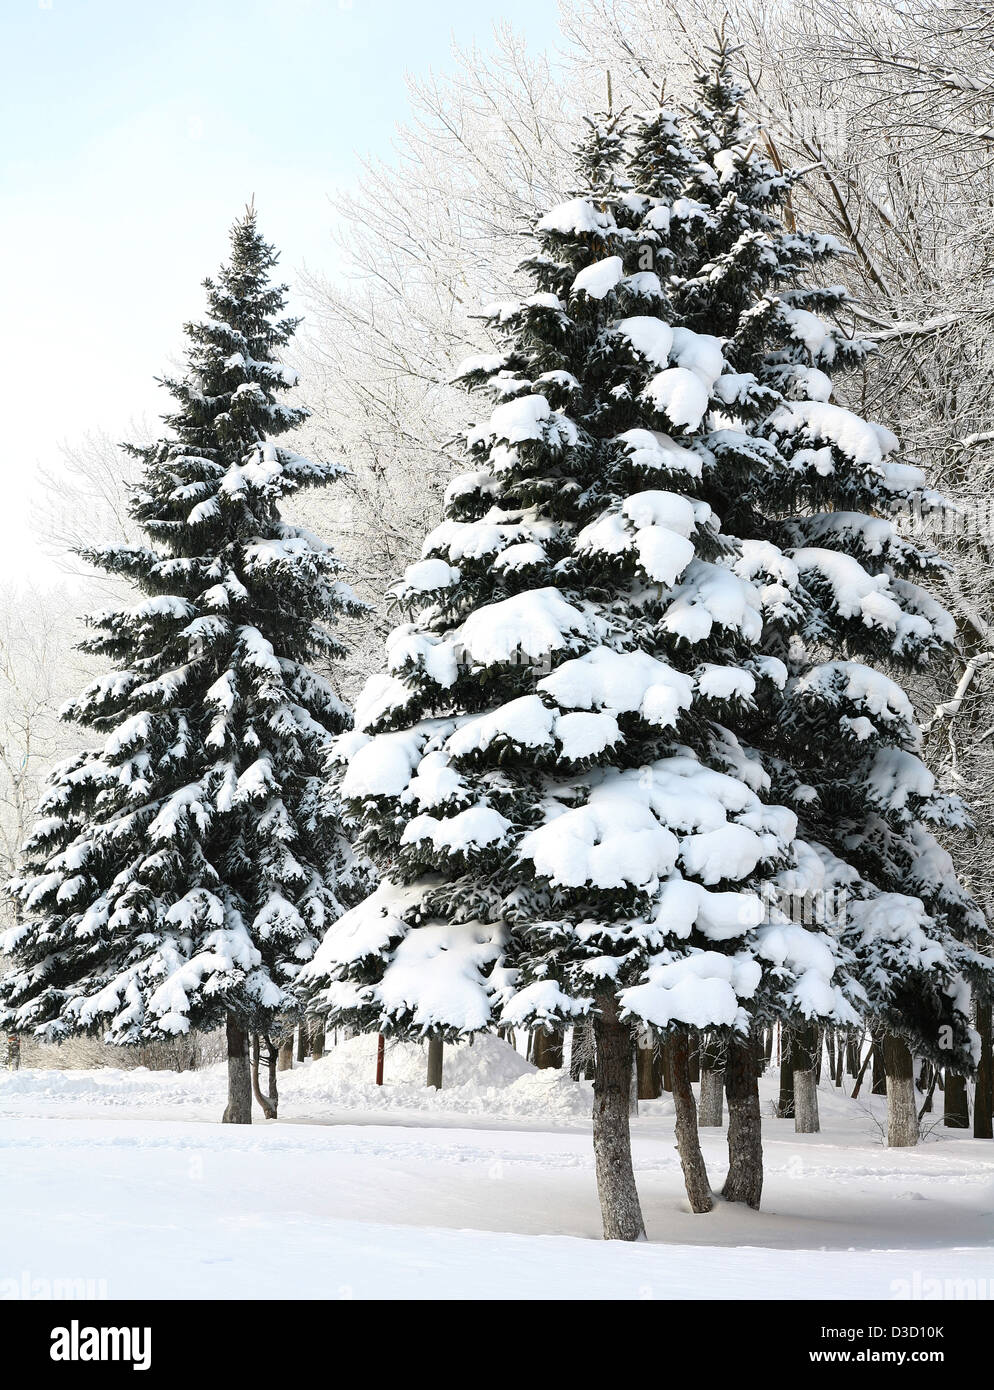 Fir trees with snowy branches in sunlight - Stock Image